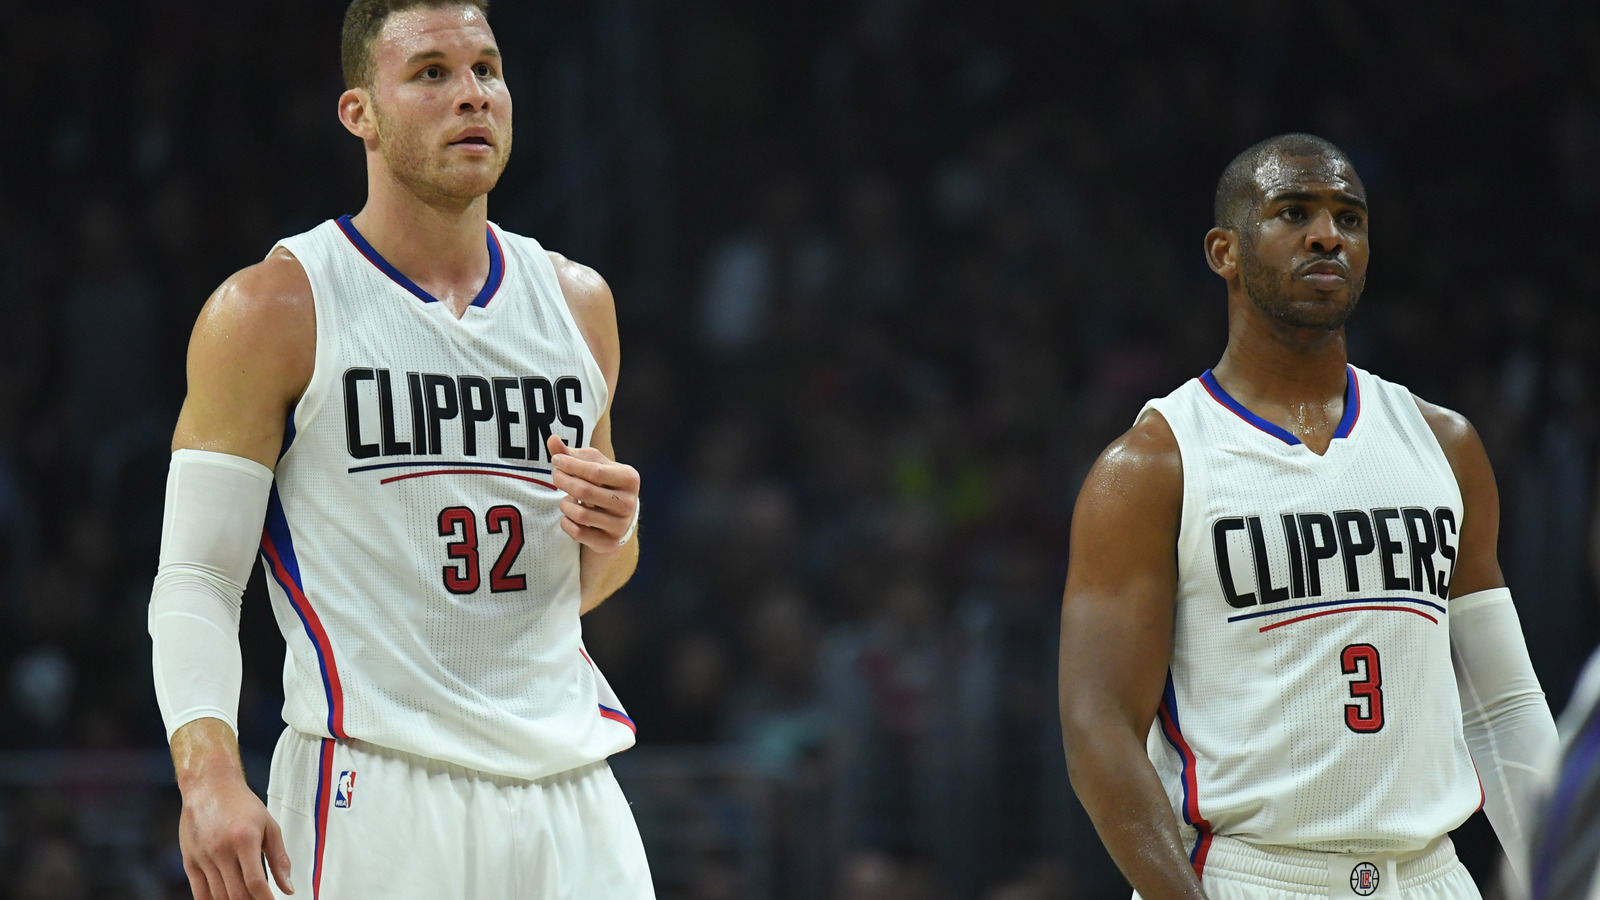 La clippers the impact of blake griffins surgery on the team foxsports com - Is Chris Paul More Likely To Remain With The Clippers Than Blake Griffin Kirby Lee Usa Today Sports